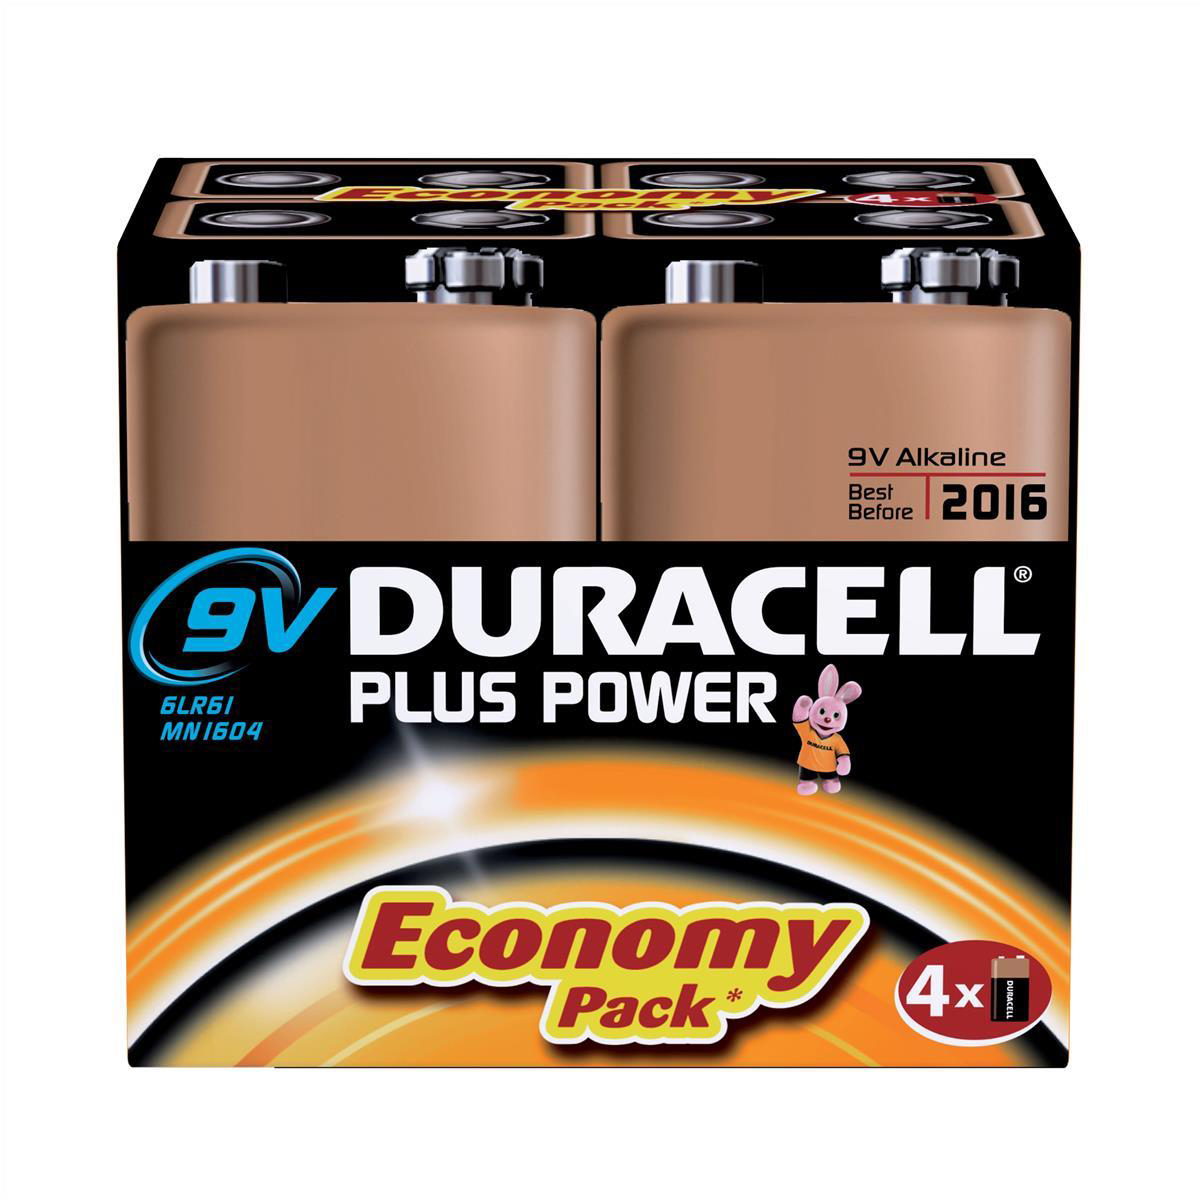 Duracell Plus Power Battery Alkaline 9V Ref 81275463 Pack 4